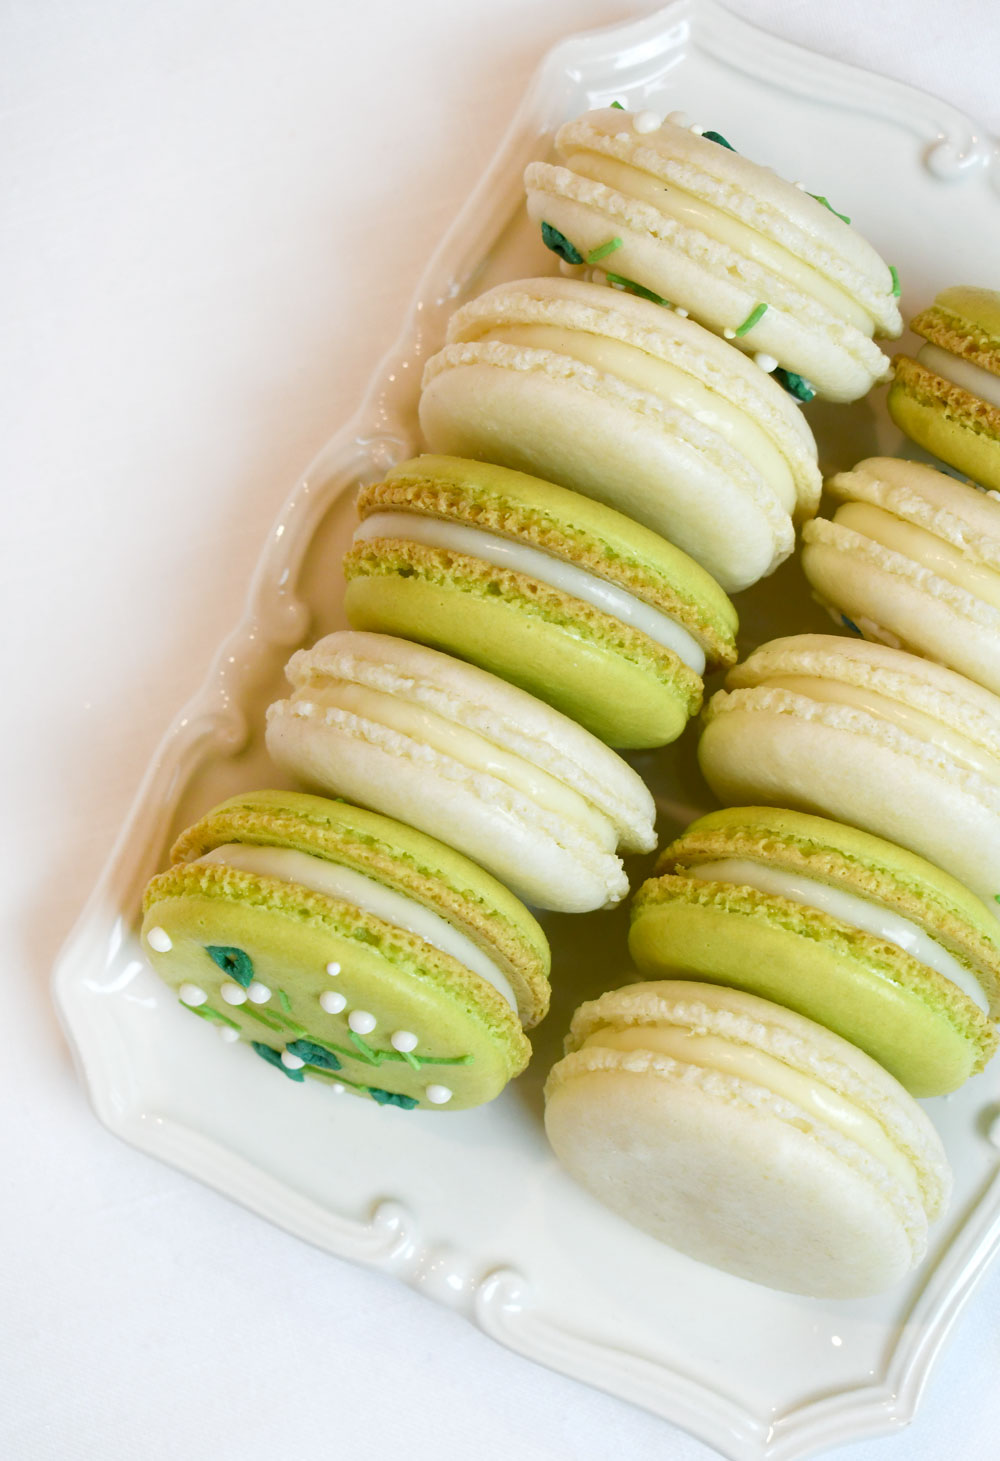 How to make perfect homemade macarons with sprinkles